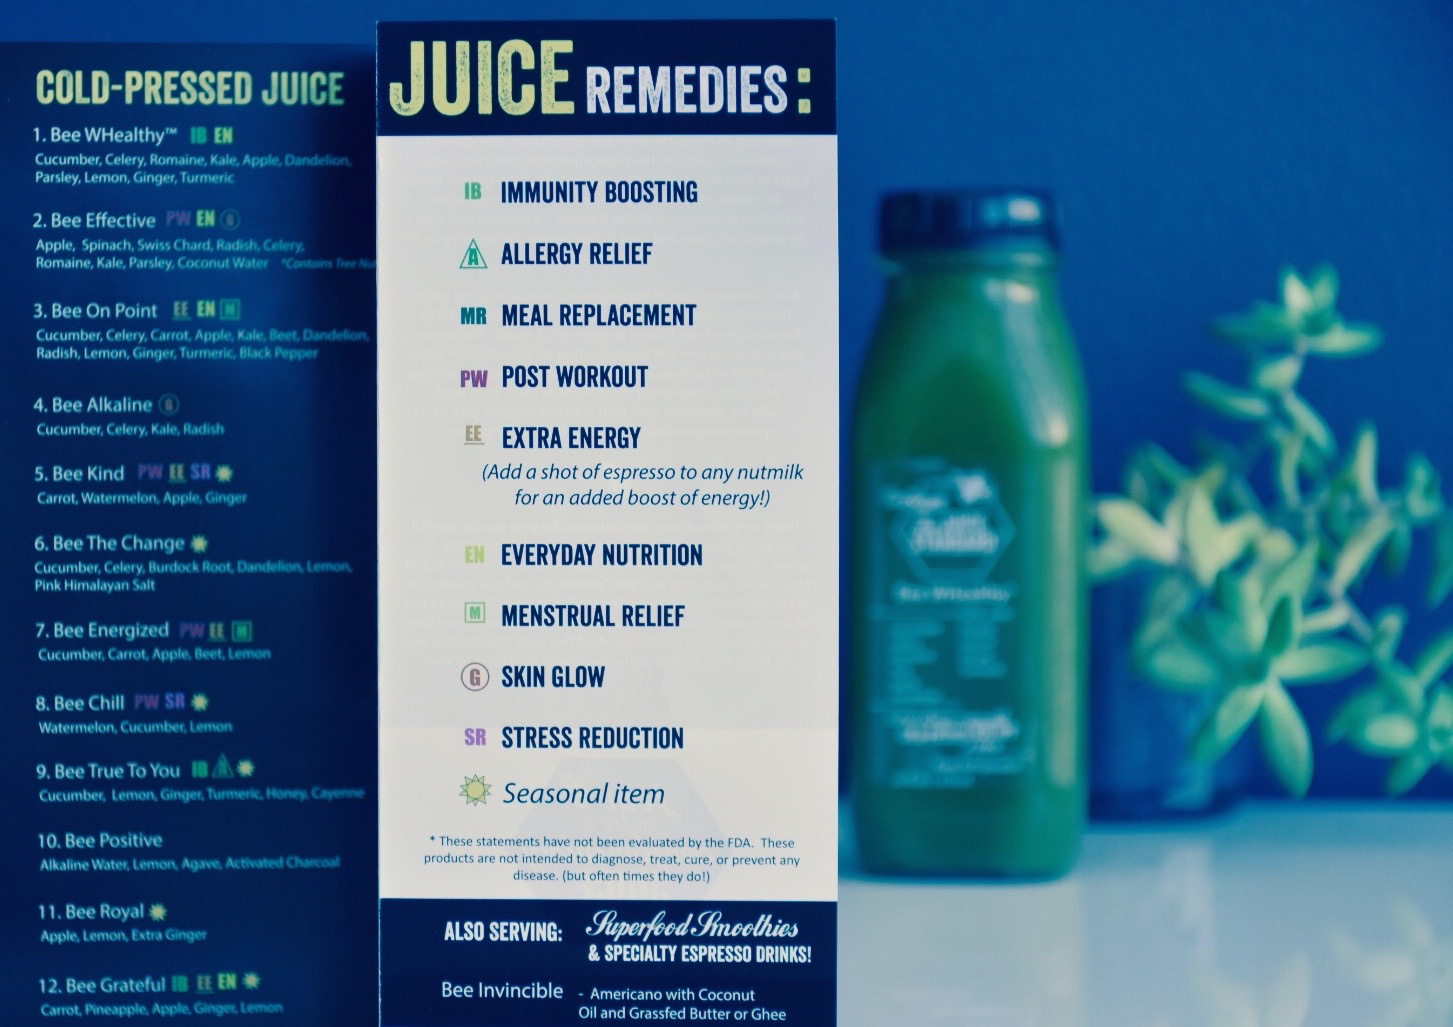 Here's a snapshot of our new menu. We hope our thoughtful 'Juice Remedies' help lead you toward your very best selves, no matter how you feel.